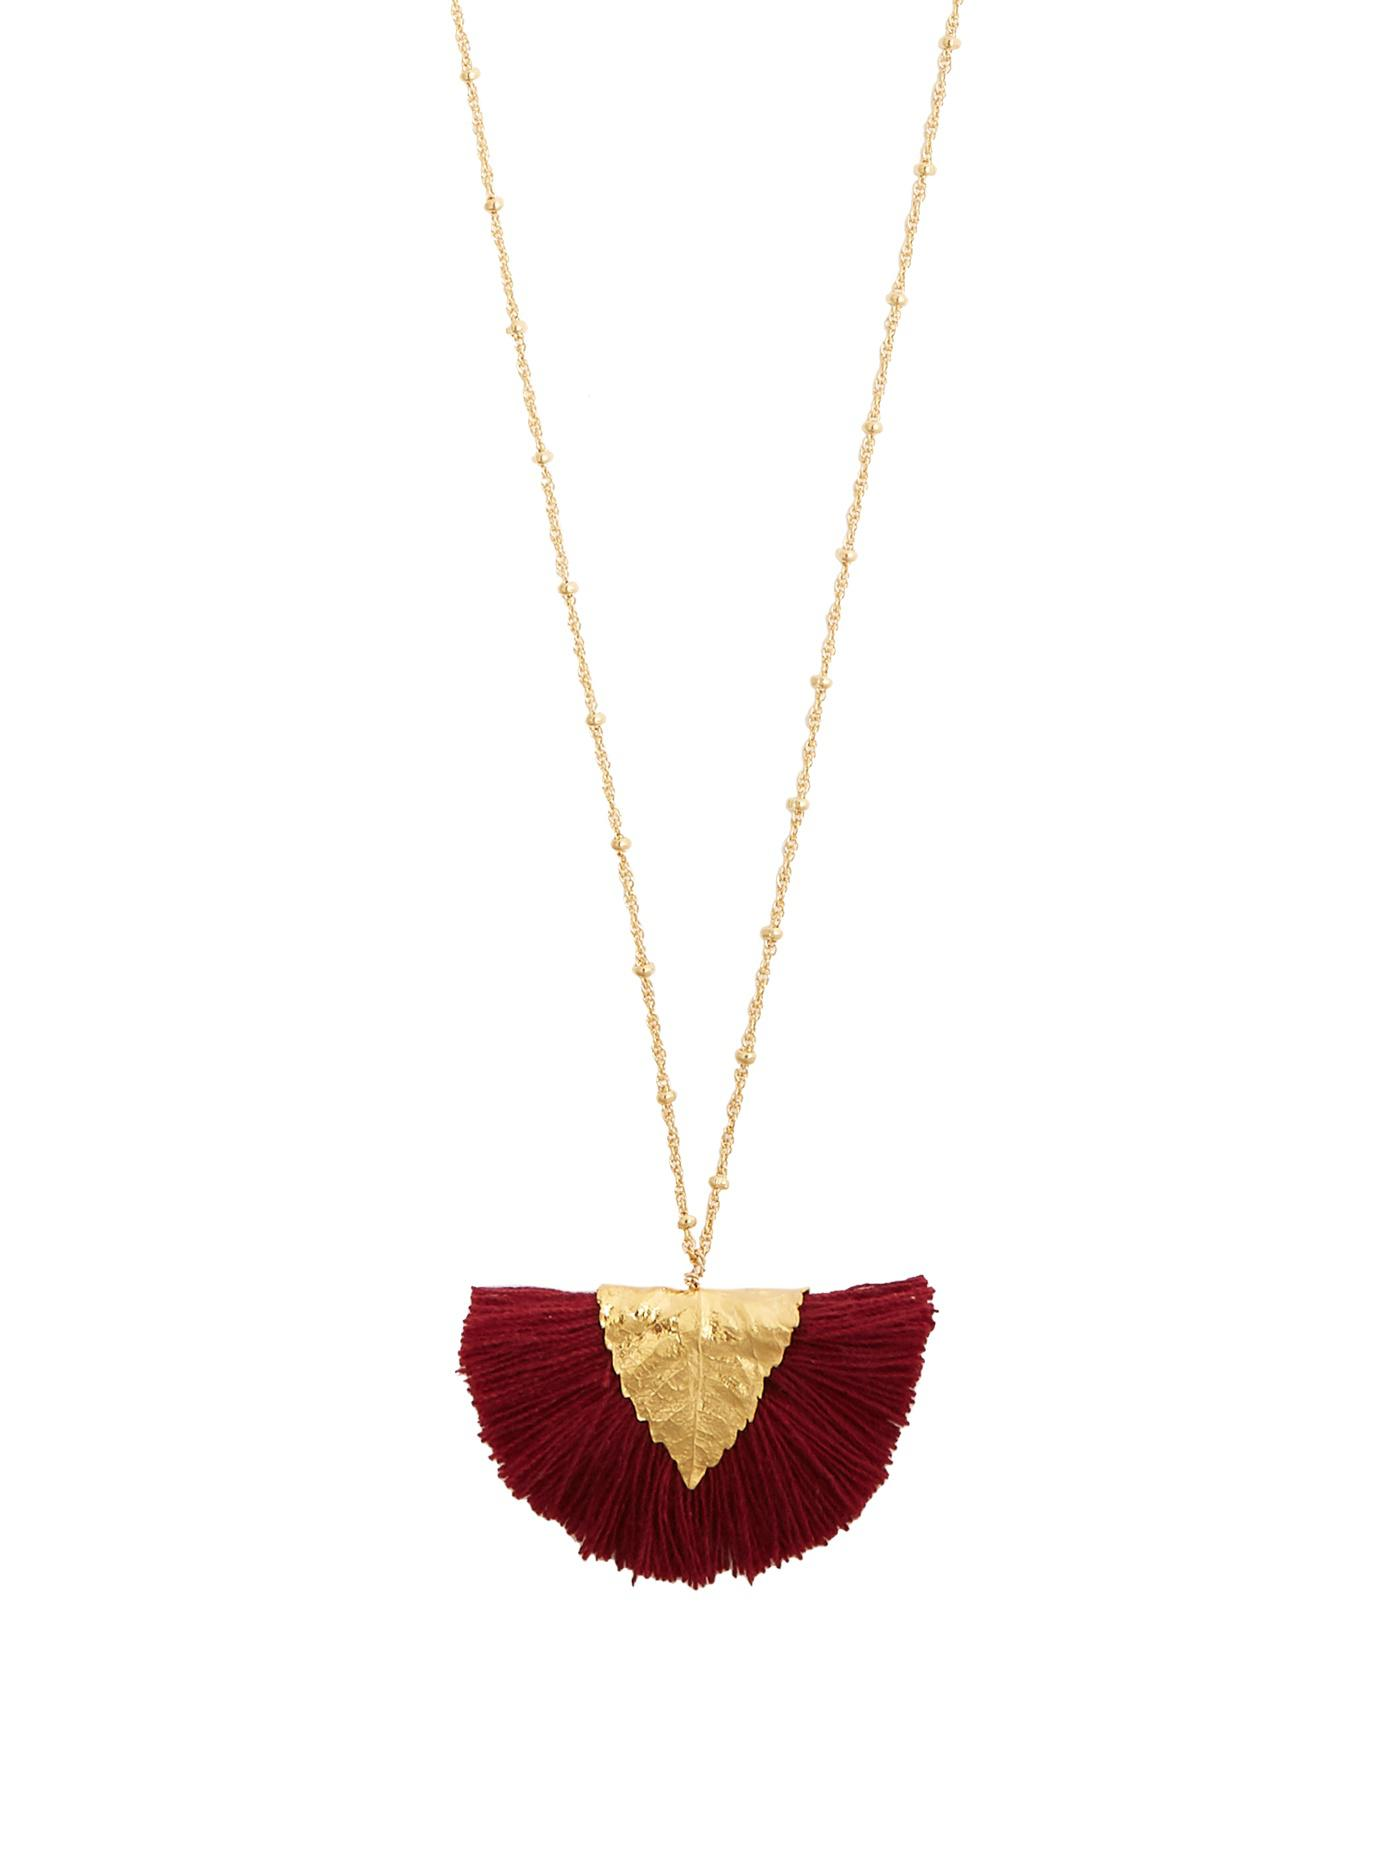 Elise Tsikis Paris Los Craie tassel-pendant gold-plated necklace RbJSDvf